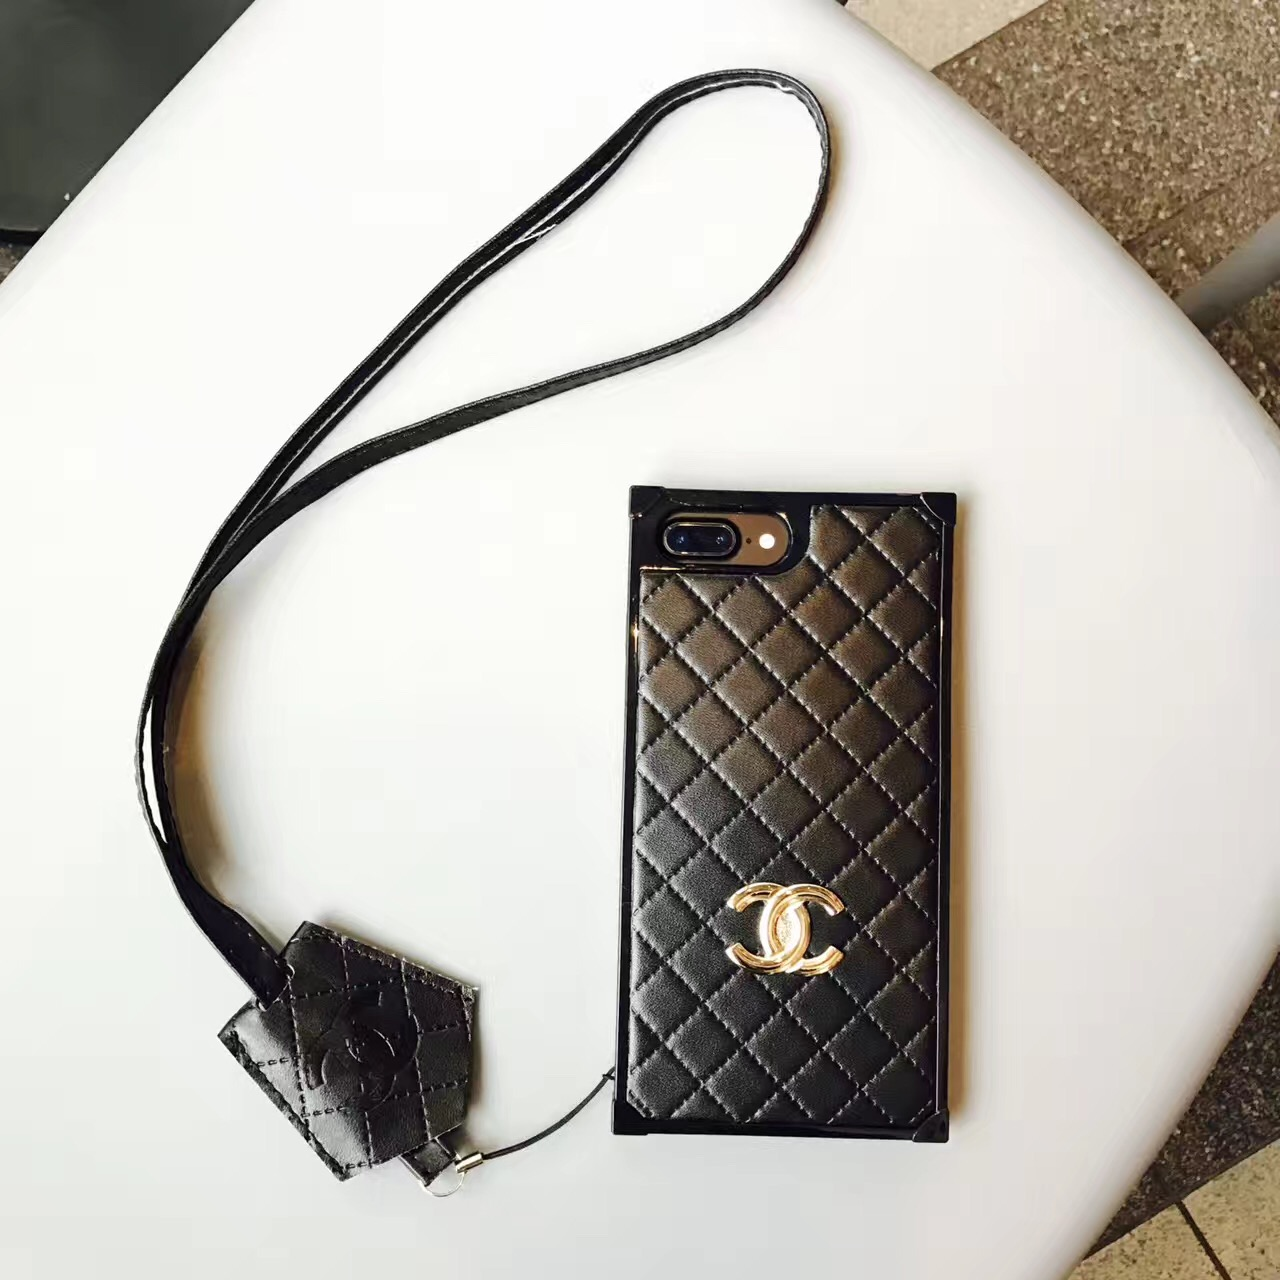 iphone lanyard case buy classic chanel faux leather lanyards cases 11979